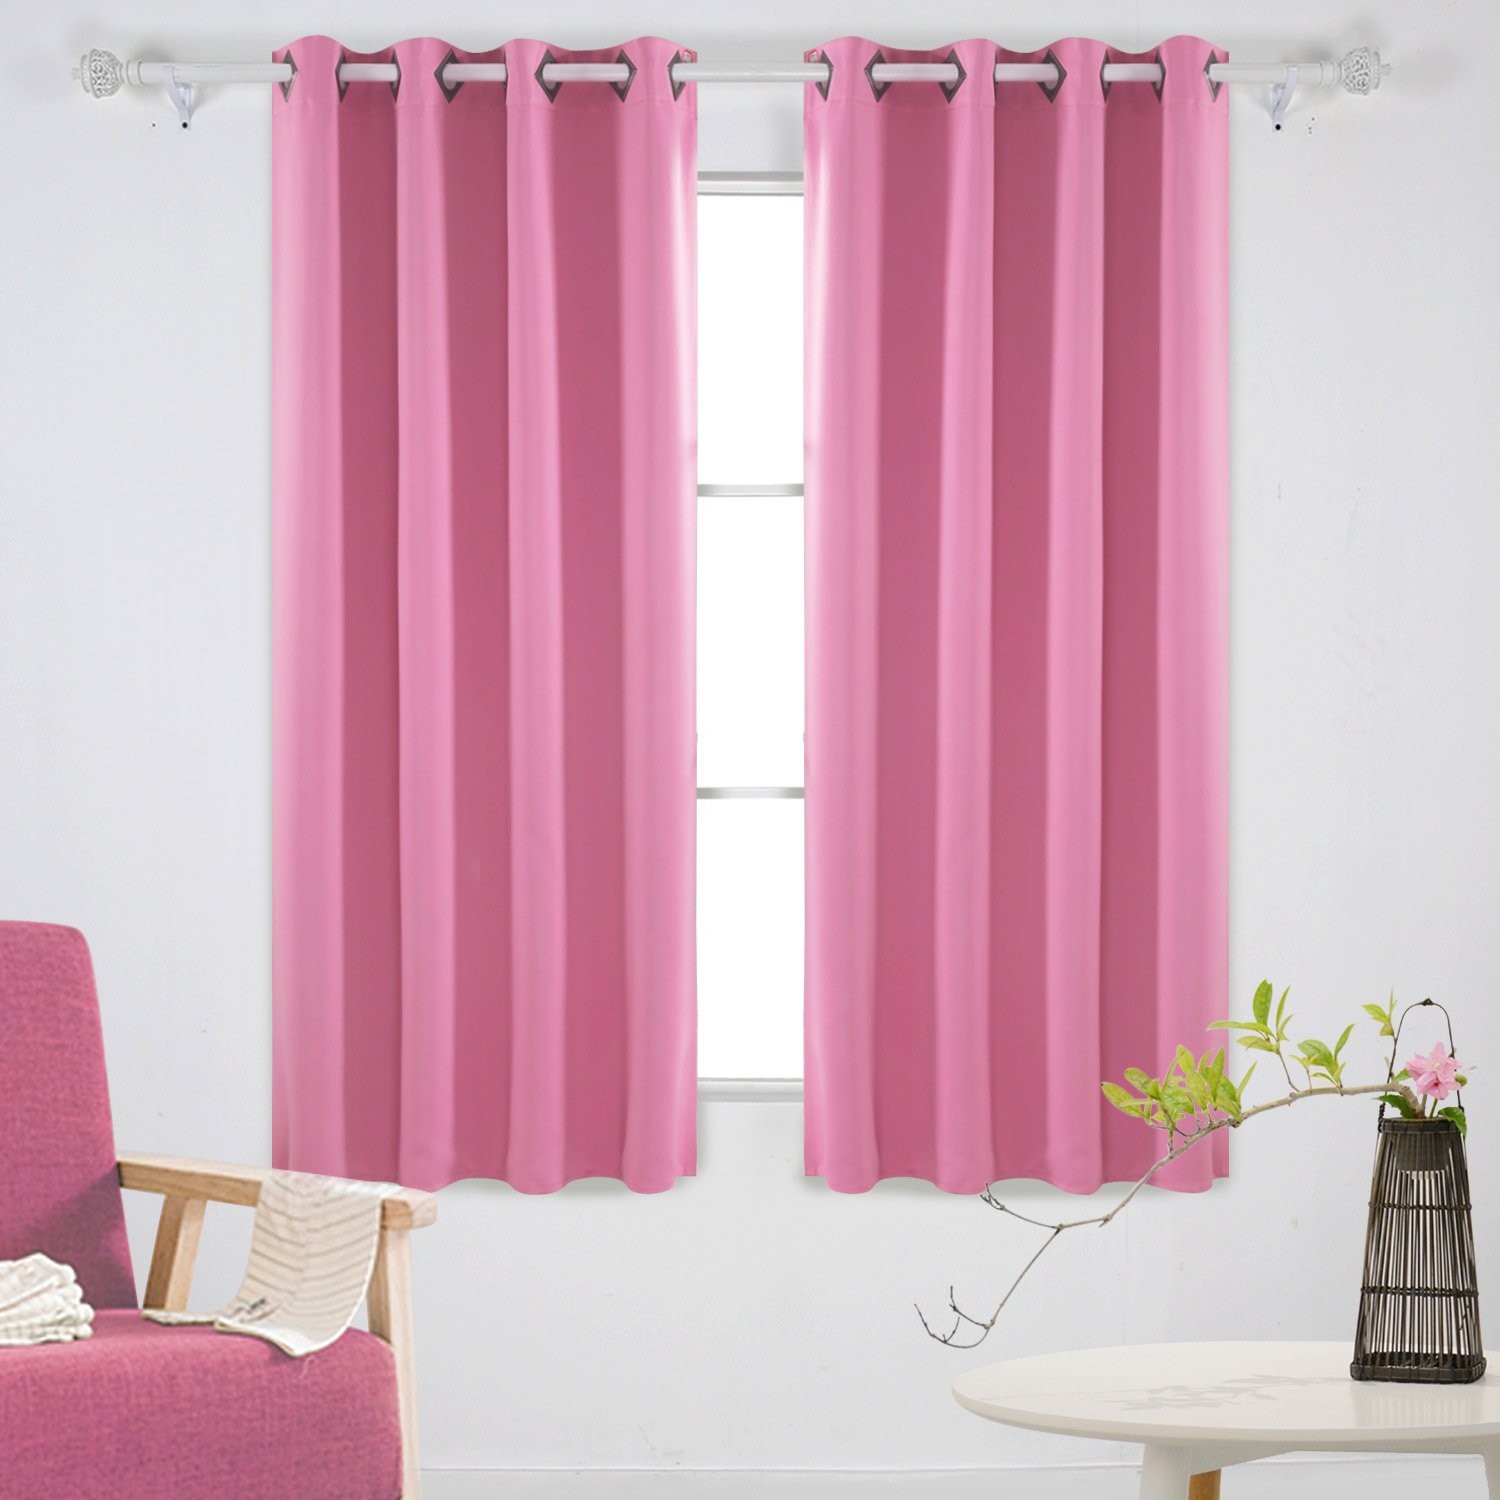 Curtains Panels Room Darkening Curtains Grommet Curtains for Girls Room